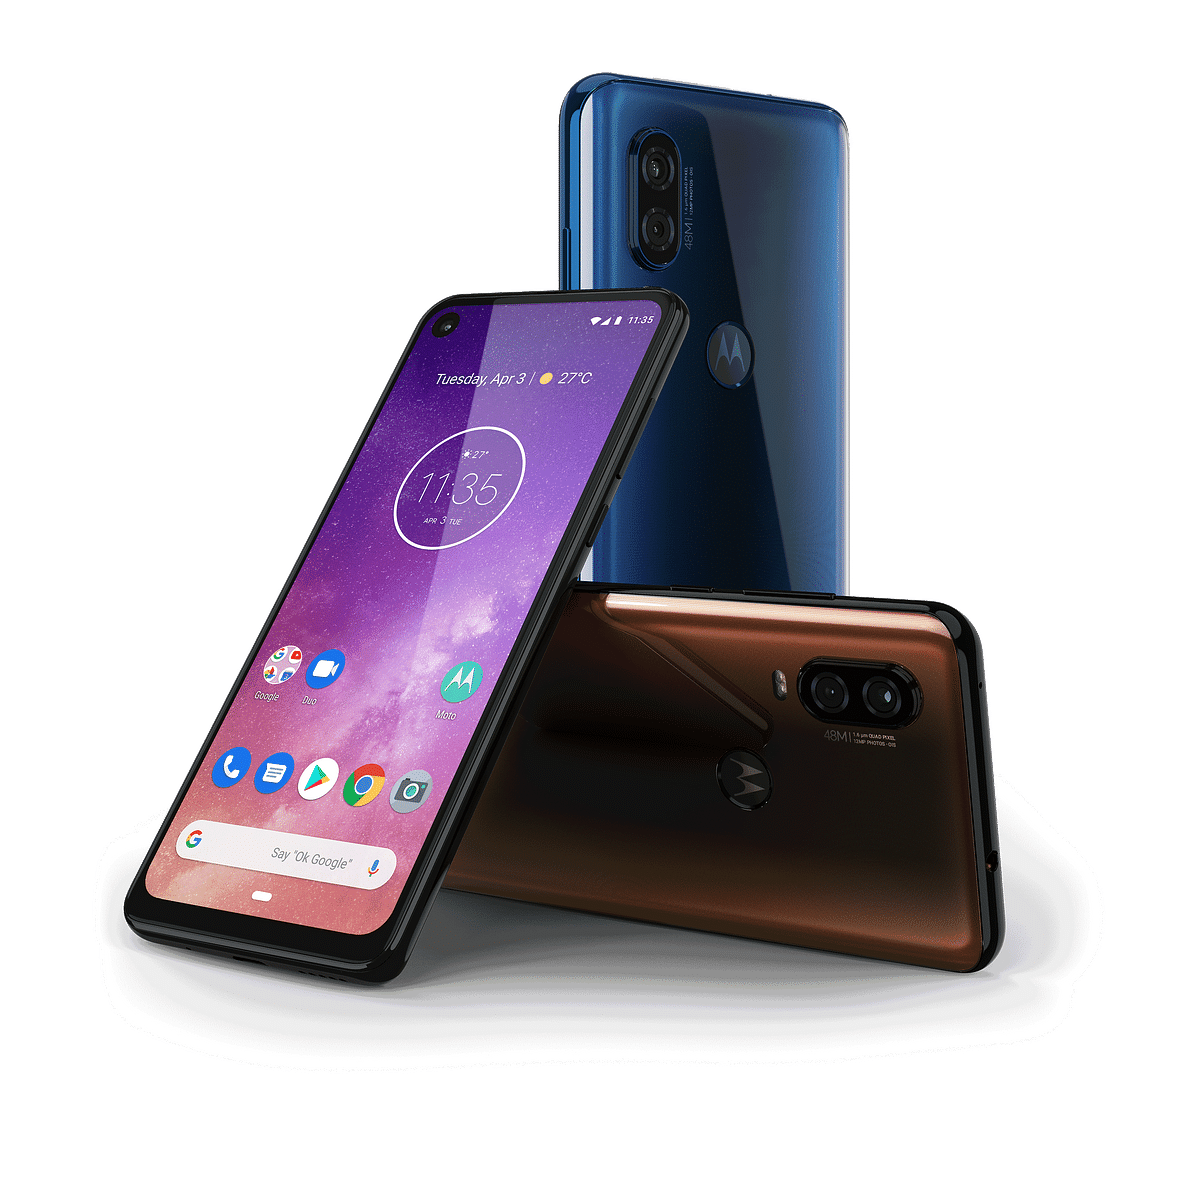 Motorola One Vision: High on Innovation and Value for Money